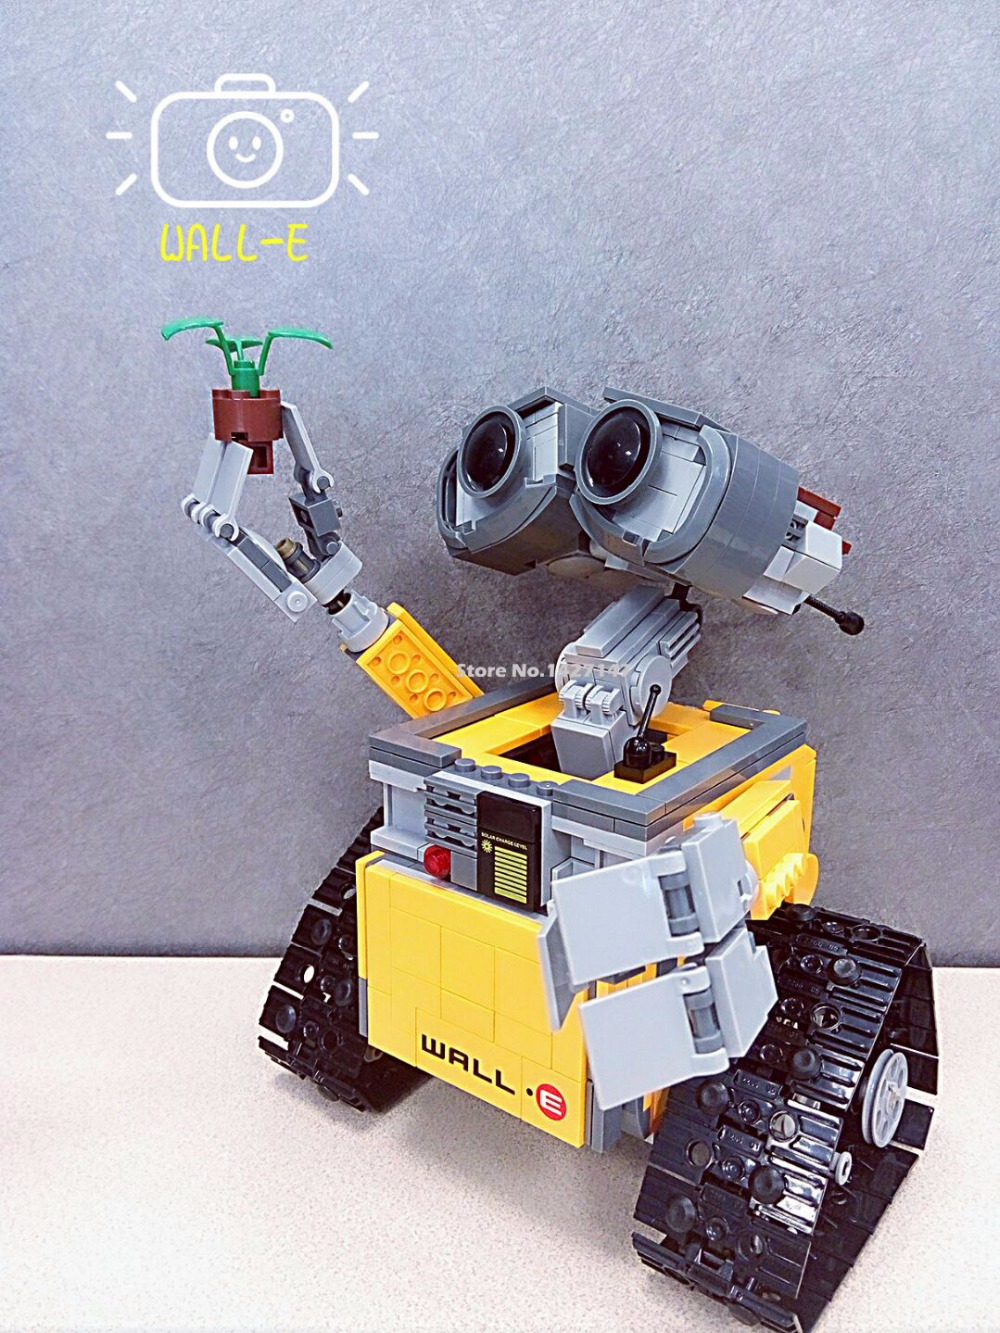 ФОТО 2016 New Lepin 16003 Idea Robot WALL E Building Set Kits starwars building Bricks Bringuedos toys for children